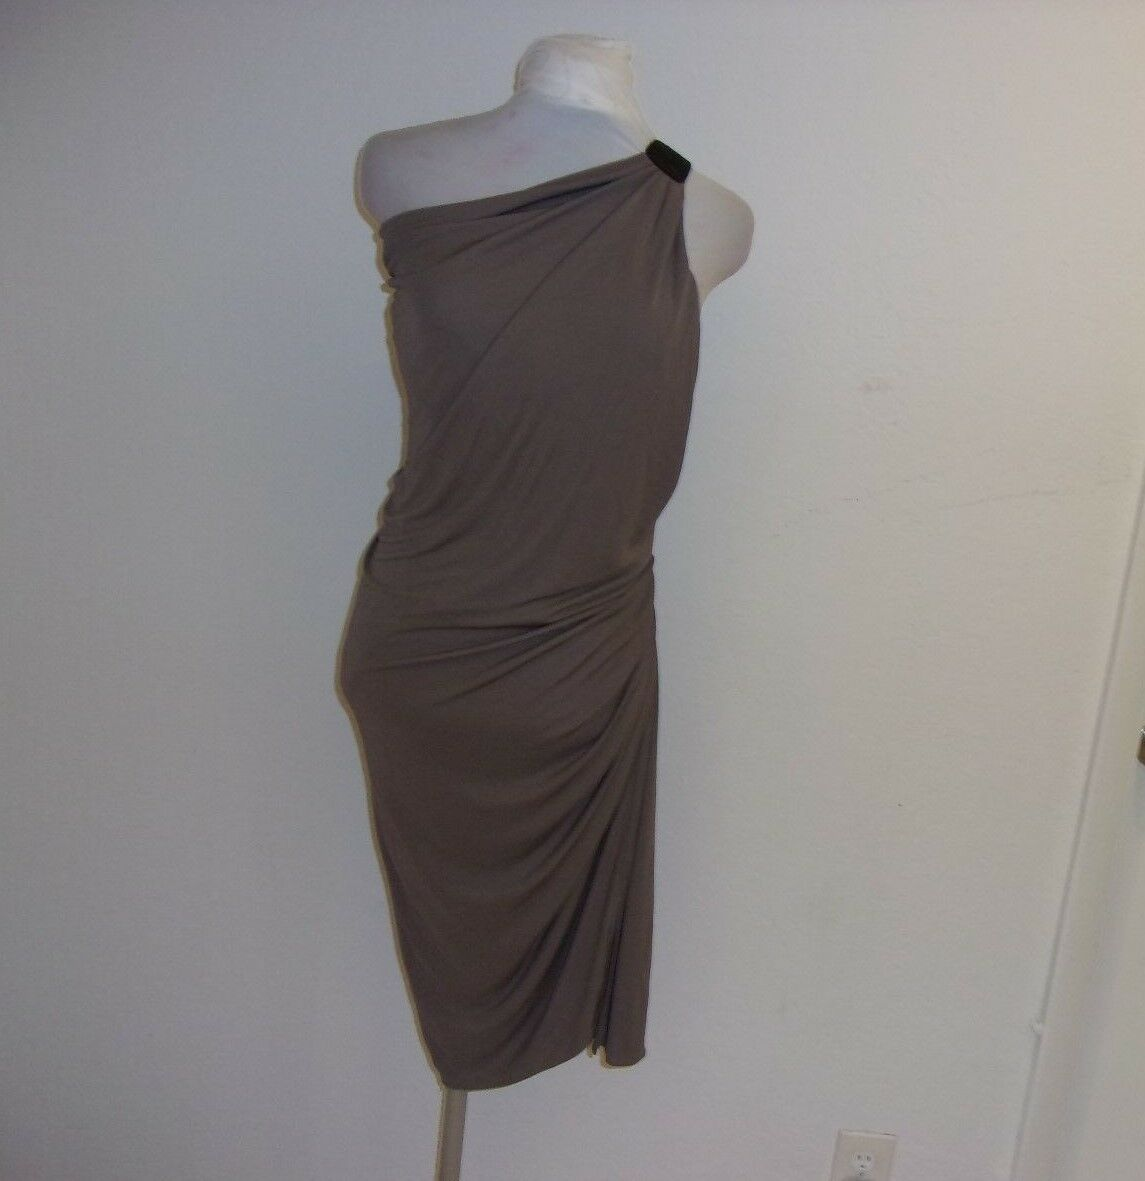 CUT 25 BY YIGAL AZROUEL TAUPE damen ONE SHOULDER DRESS Größe 0 - 2  NWT